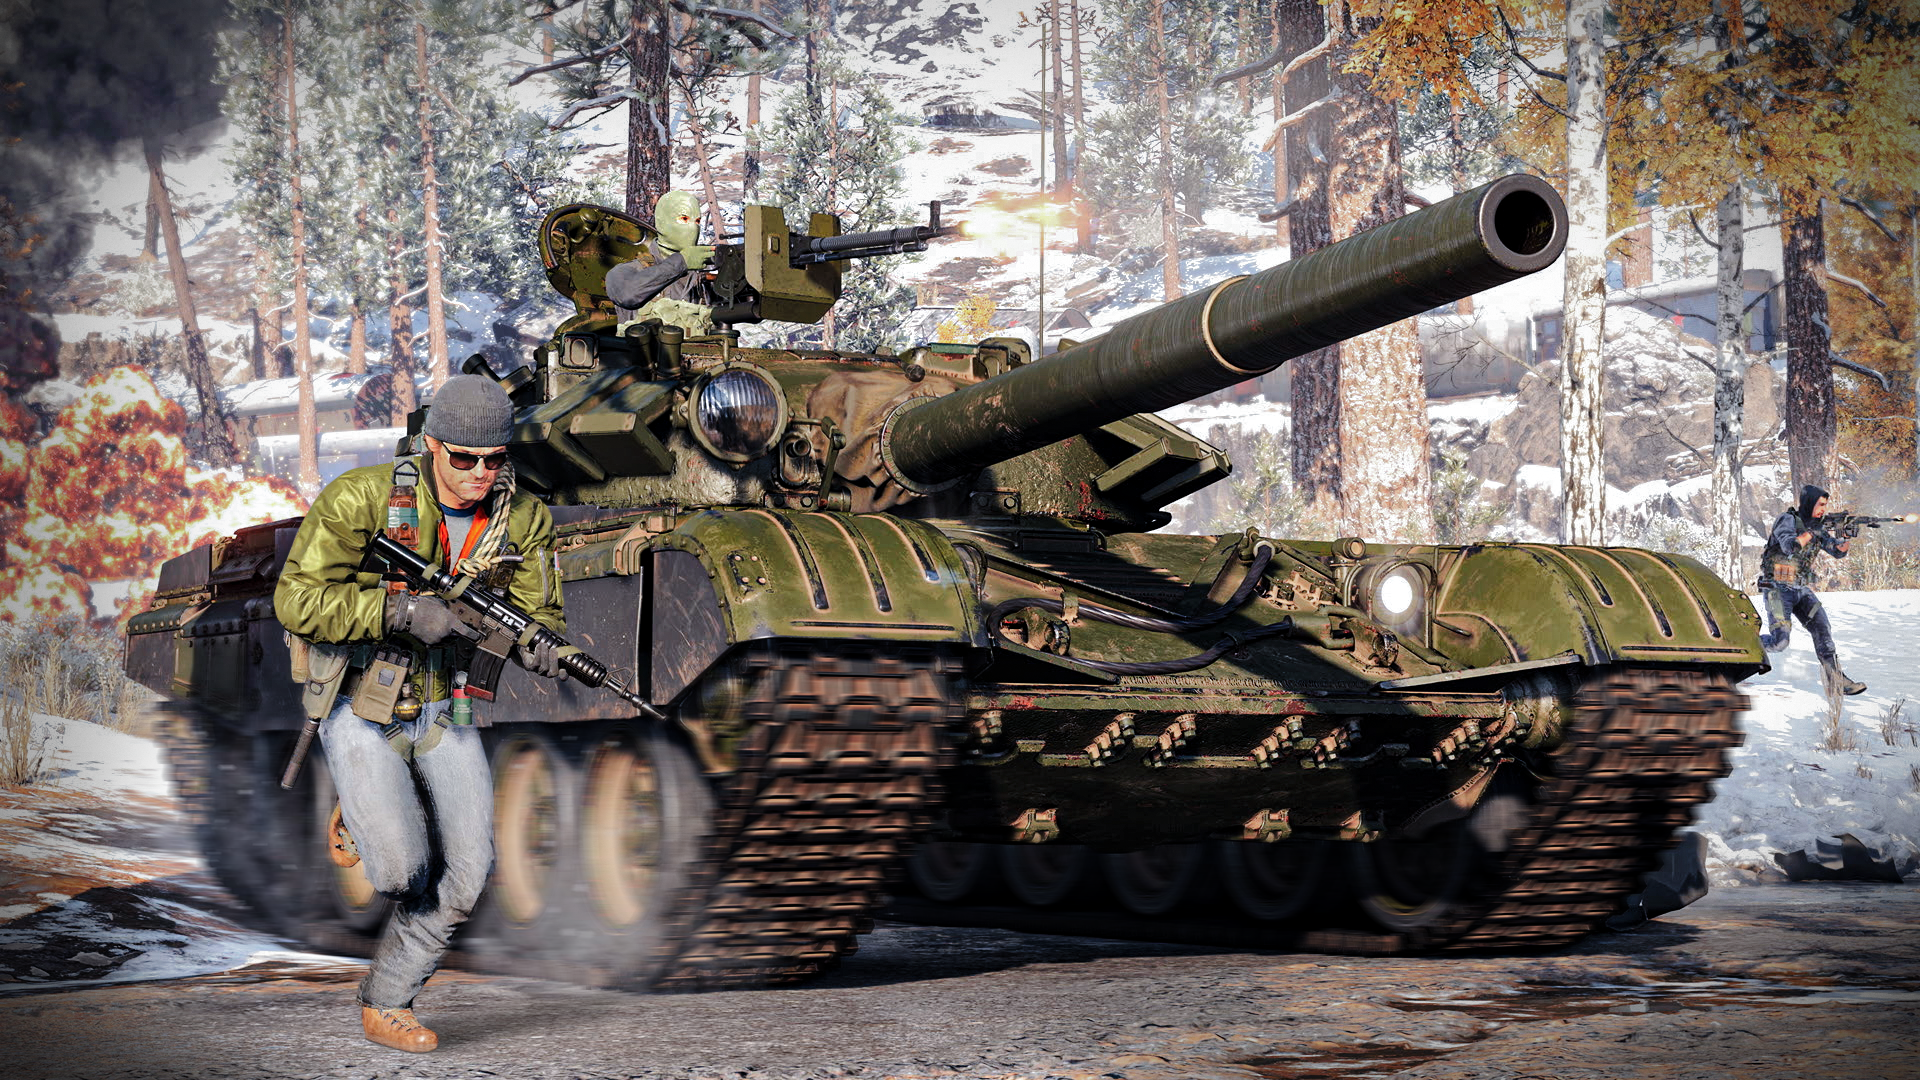 Soldiers surrounding a tank in Call of Duty: Black Ops Cold War.